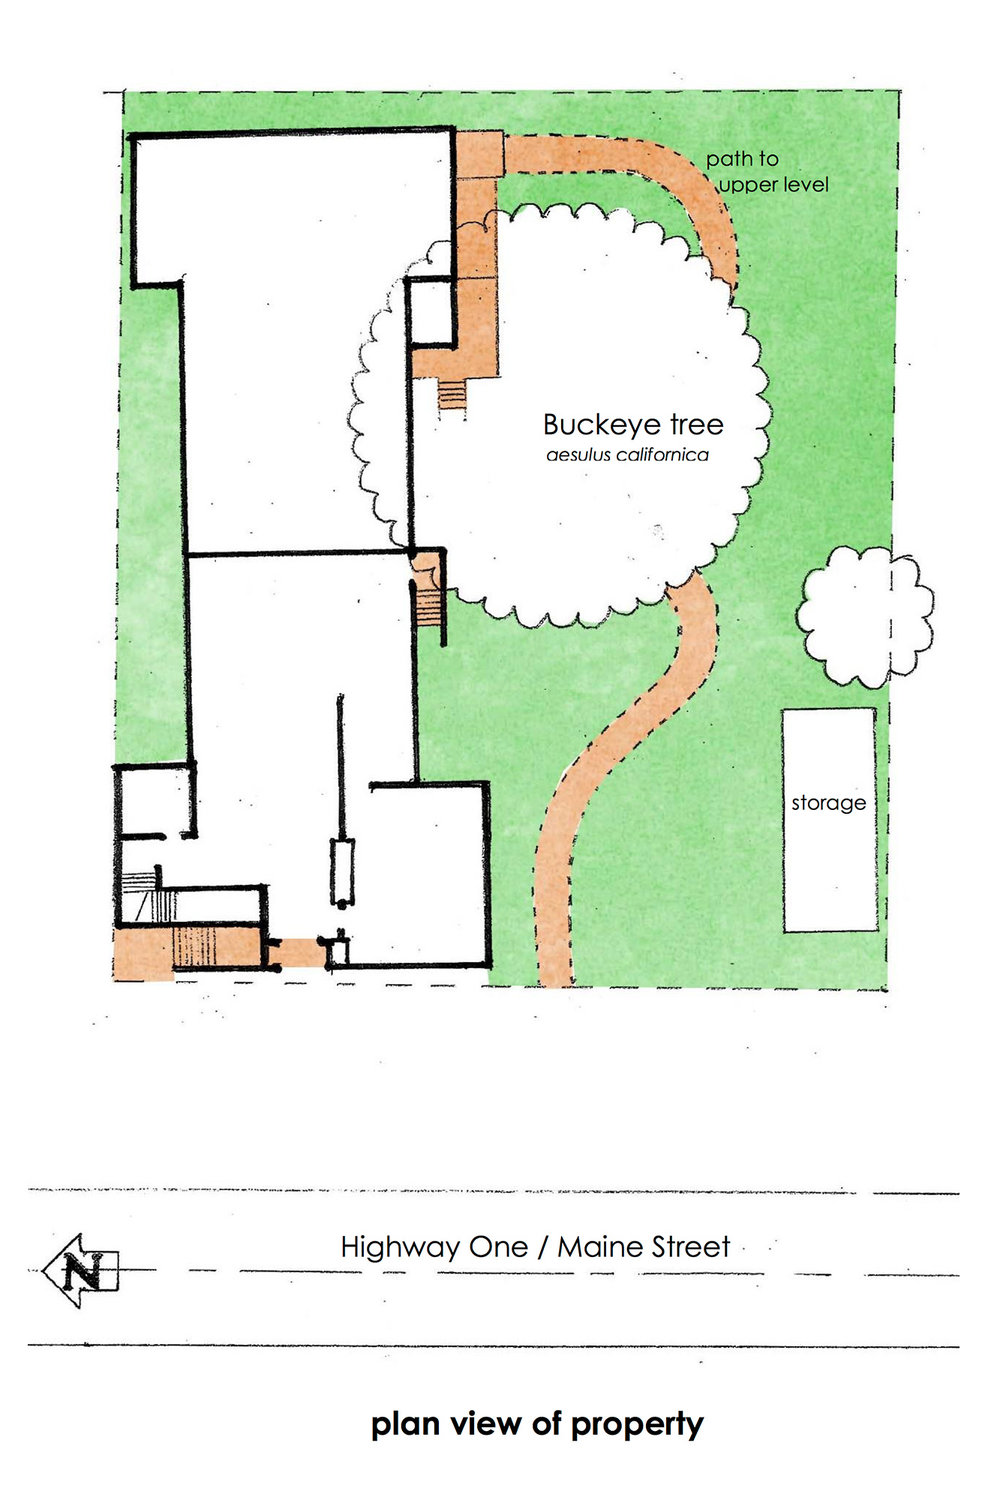 Plan View of Property